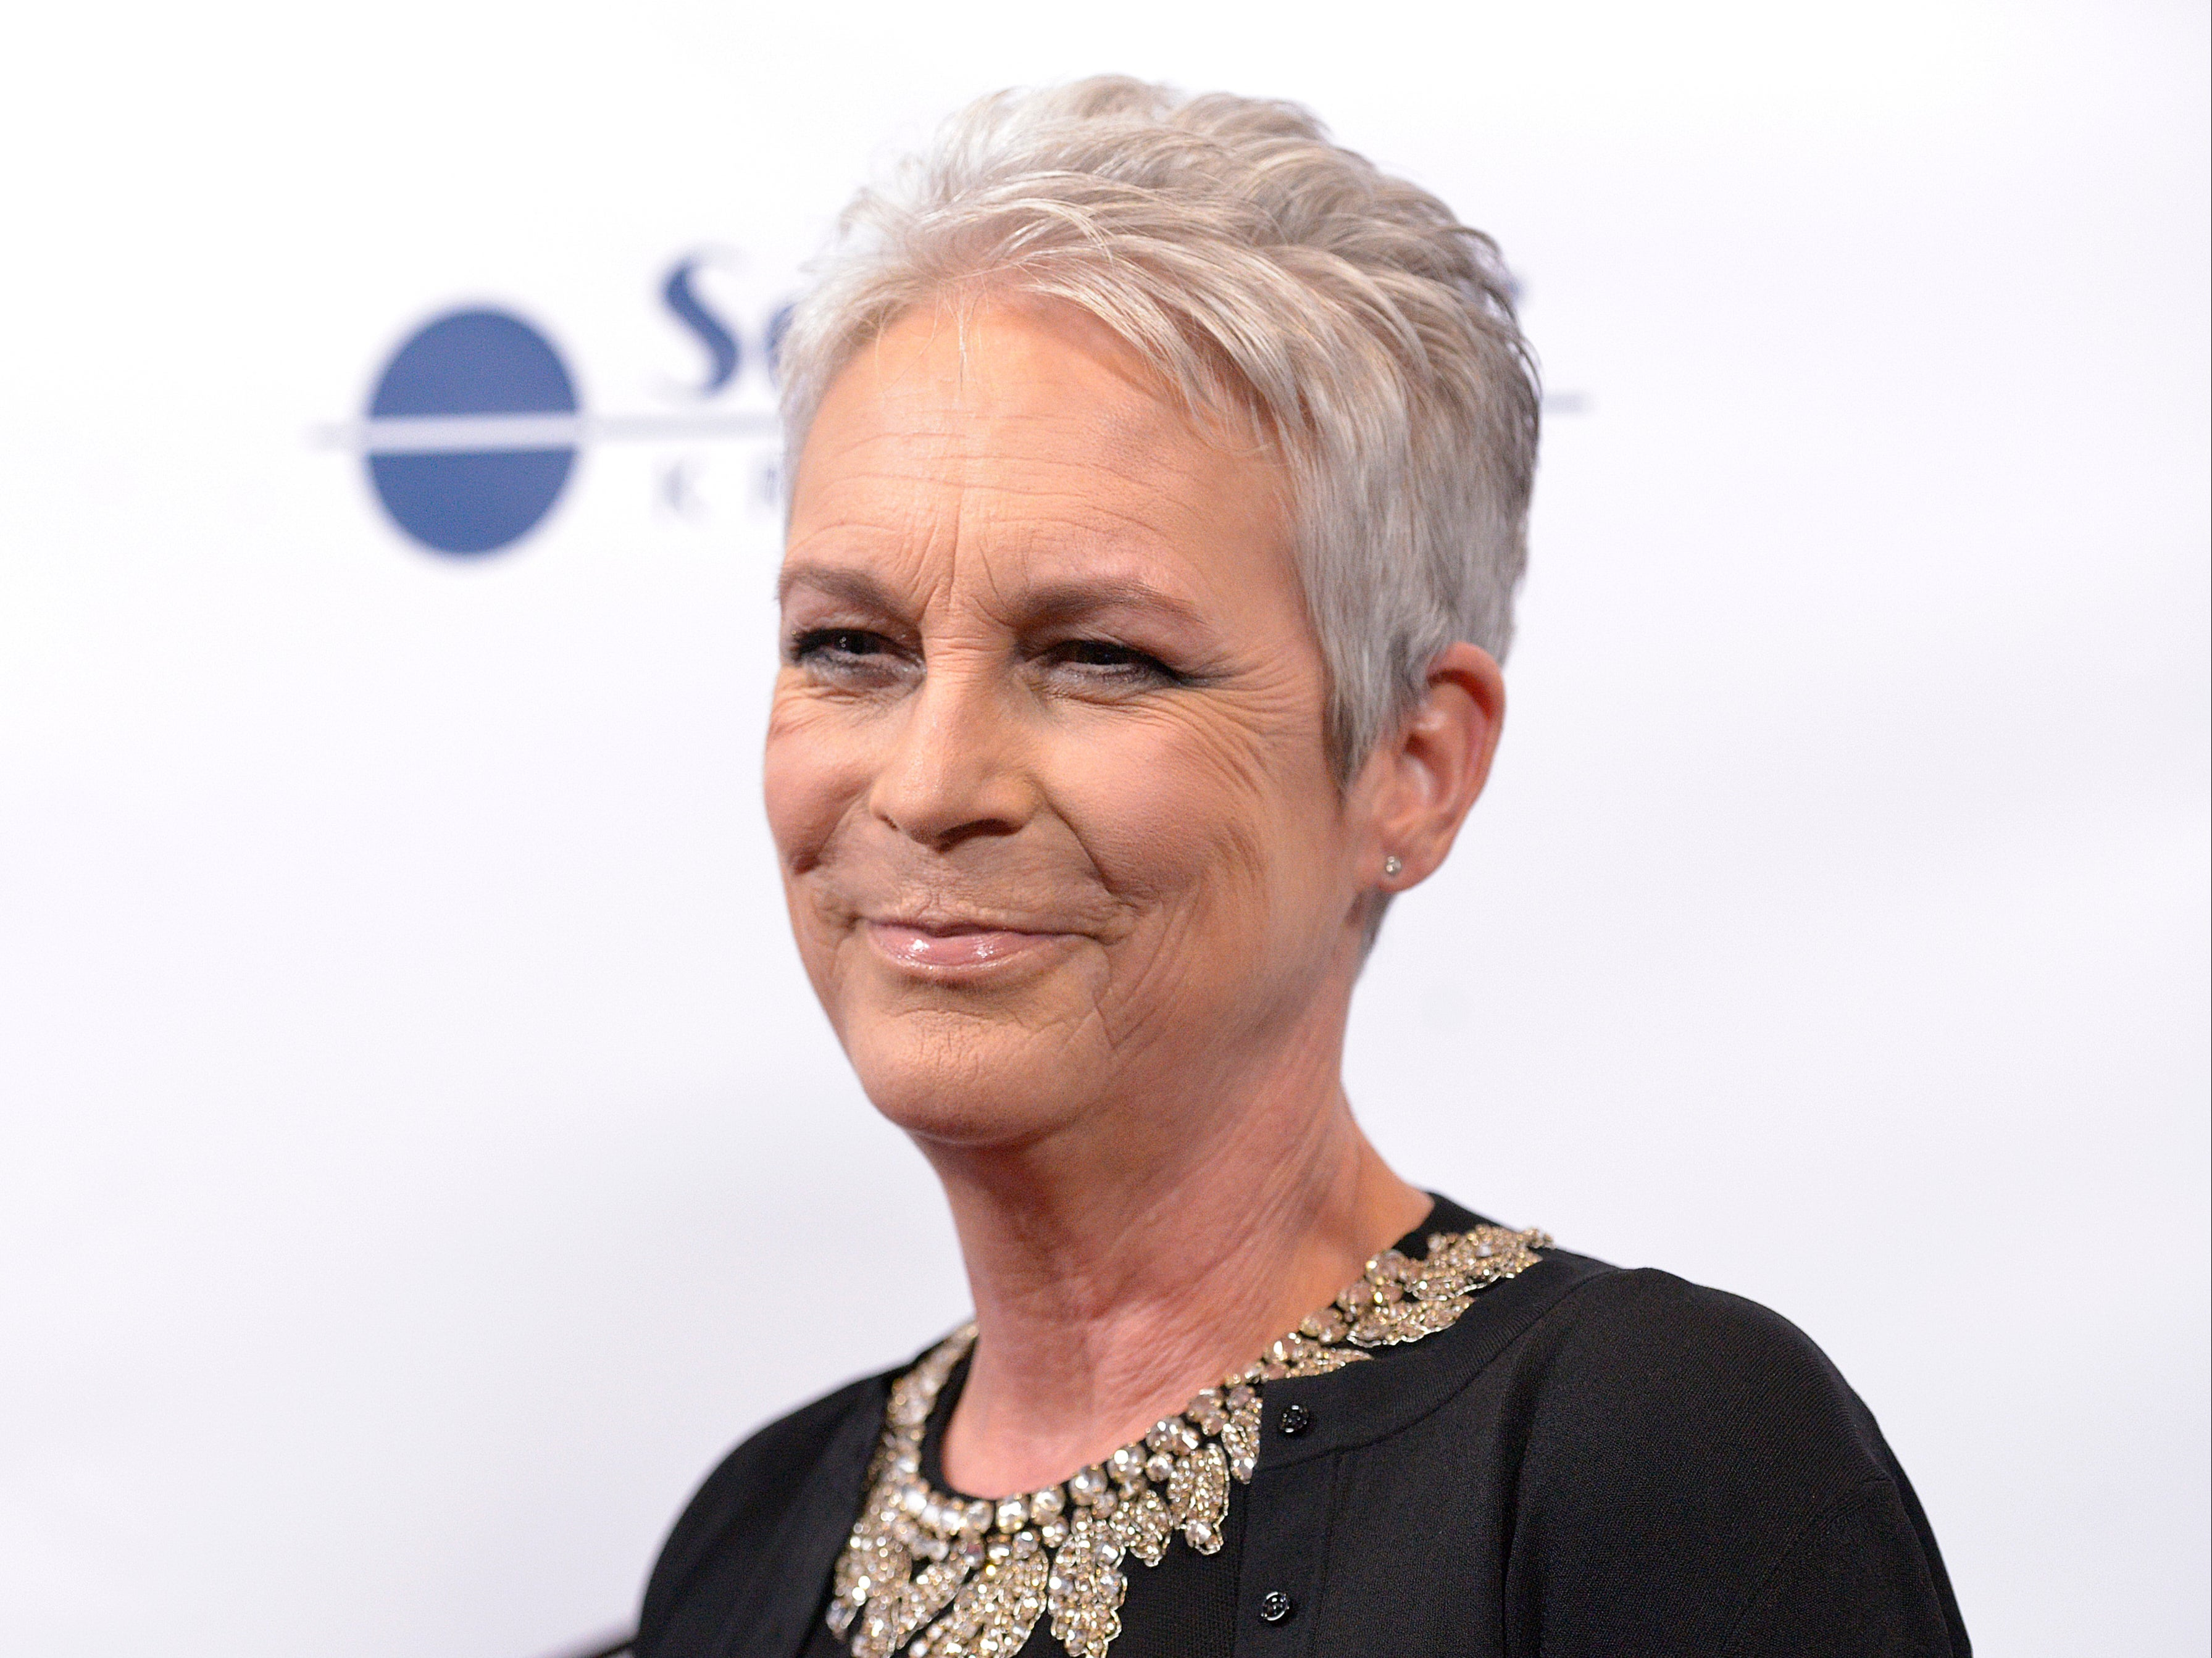 Scream queen Jamie Lee Curtis says she never made much money from early horror films